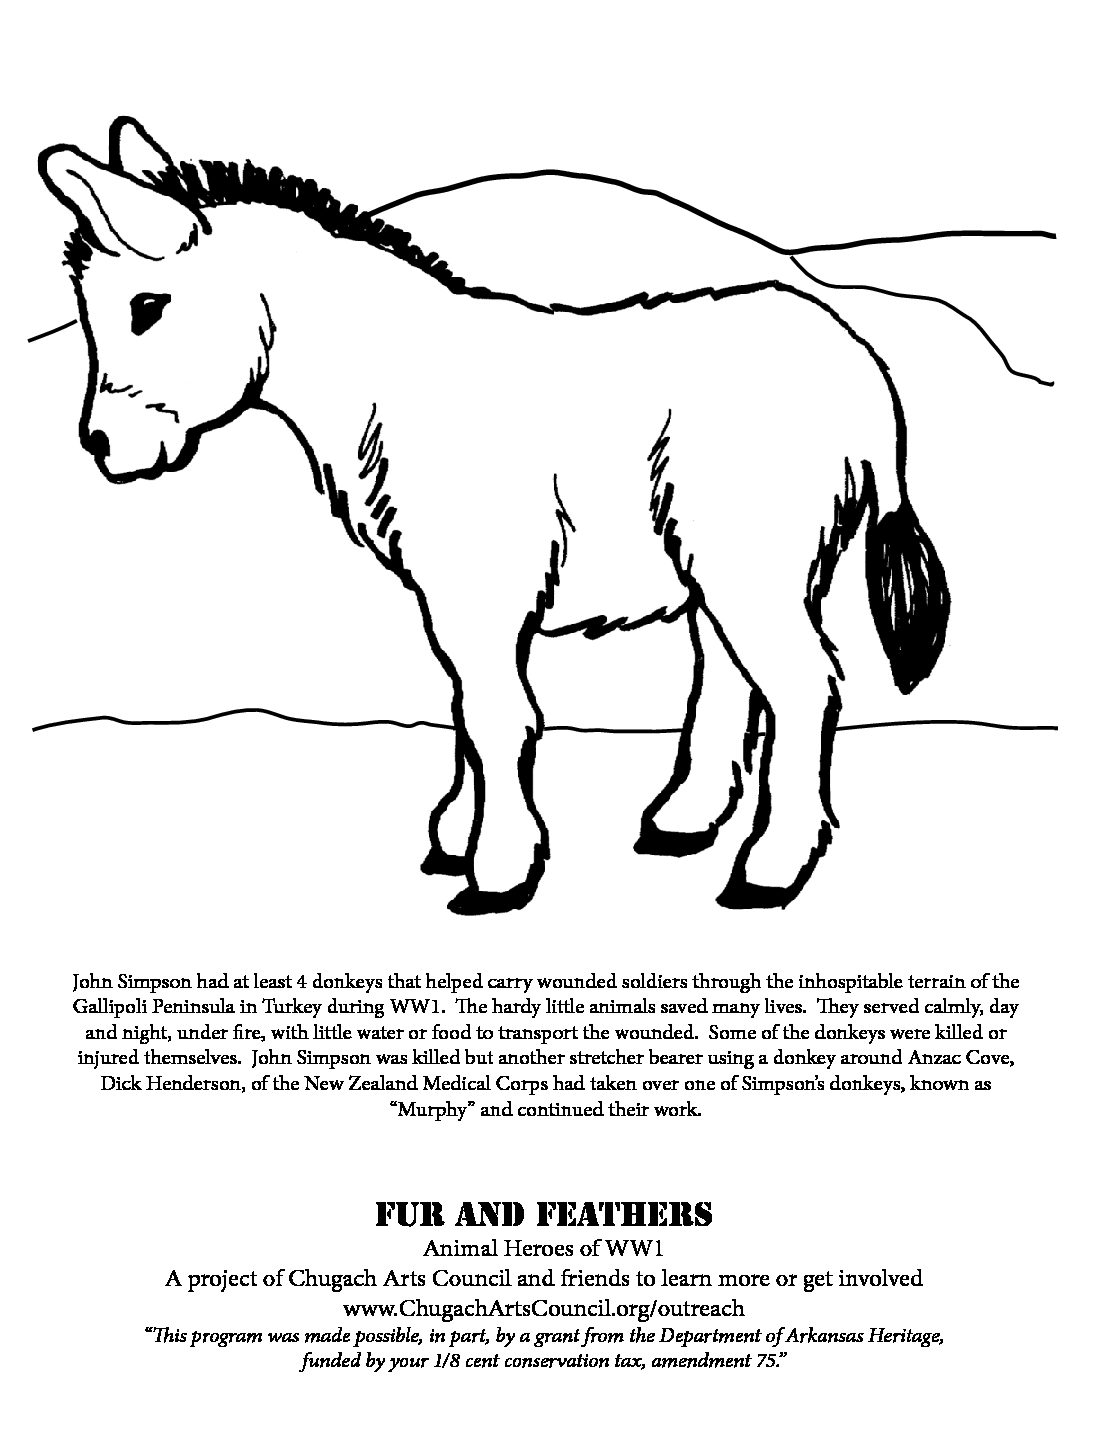 Coloring Pages, Fur and Feathers – Chugach Arts Council